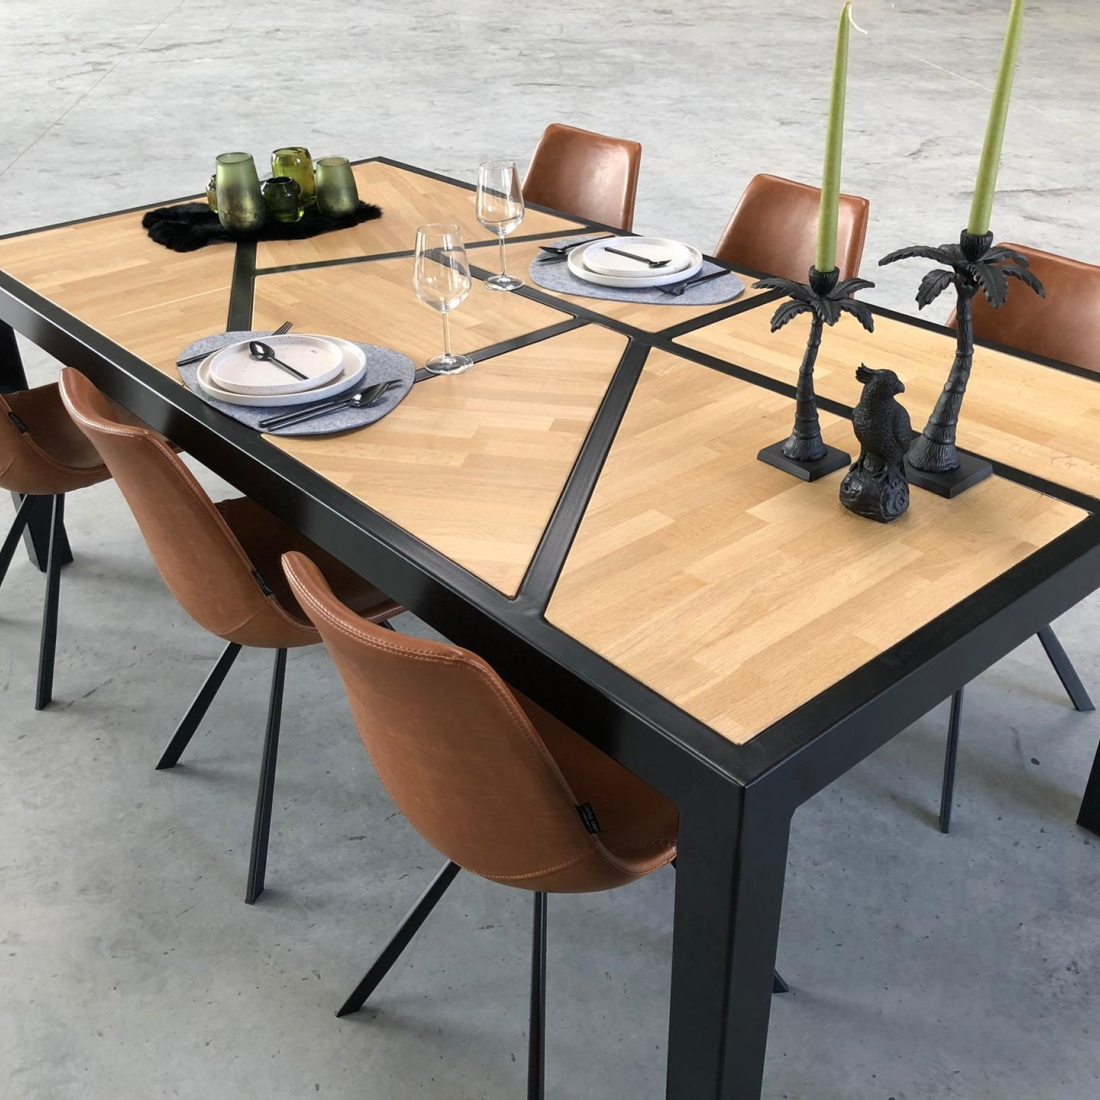 Asymmetrical table